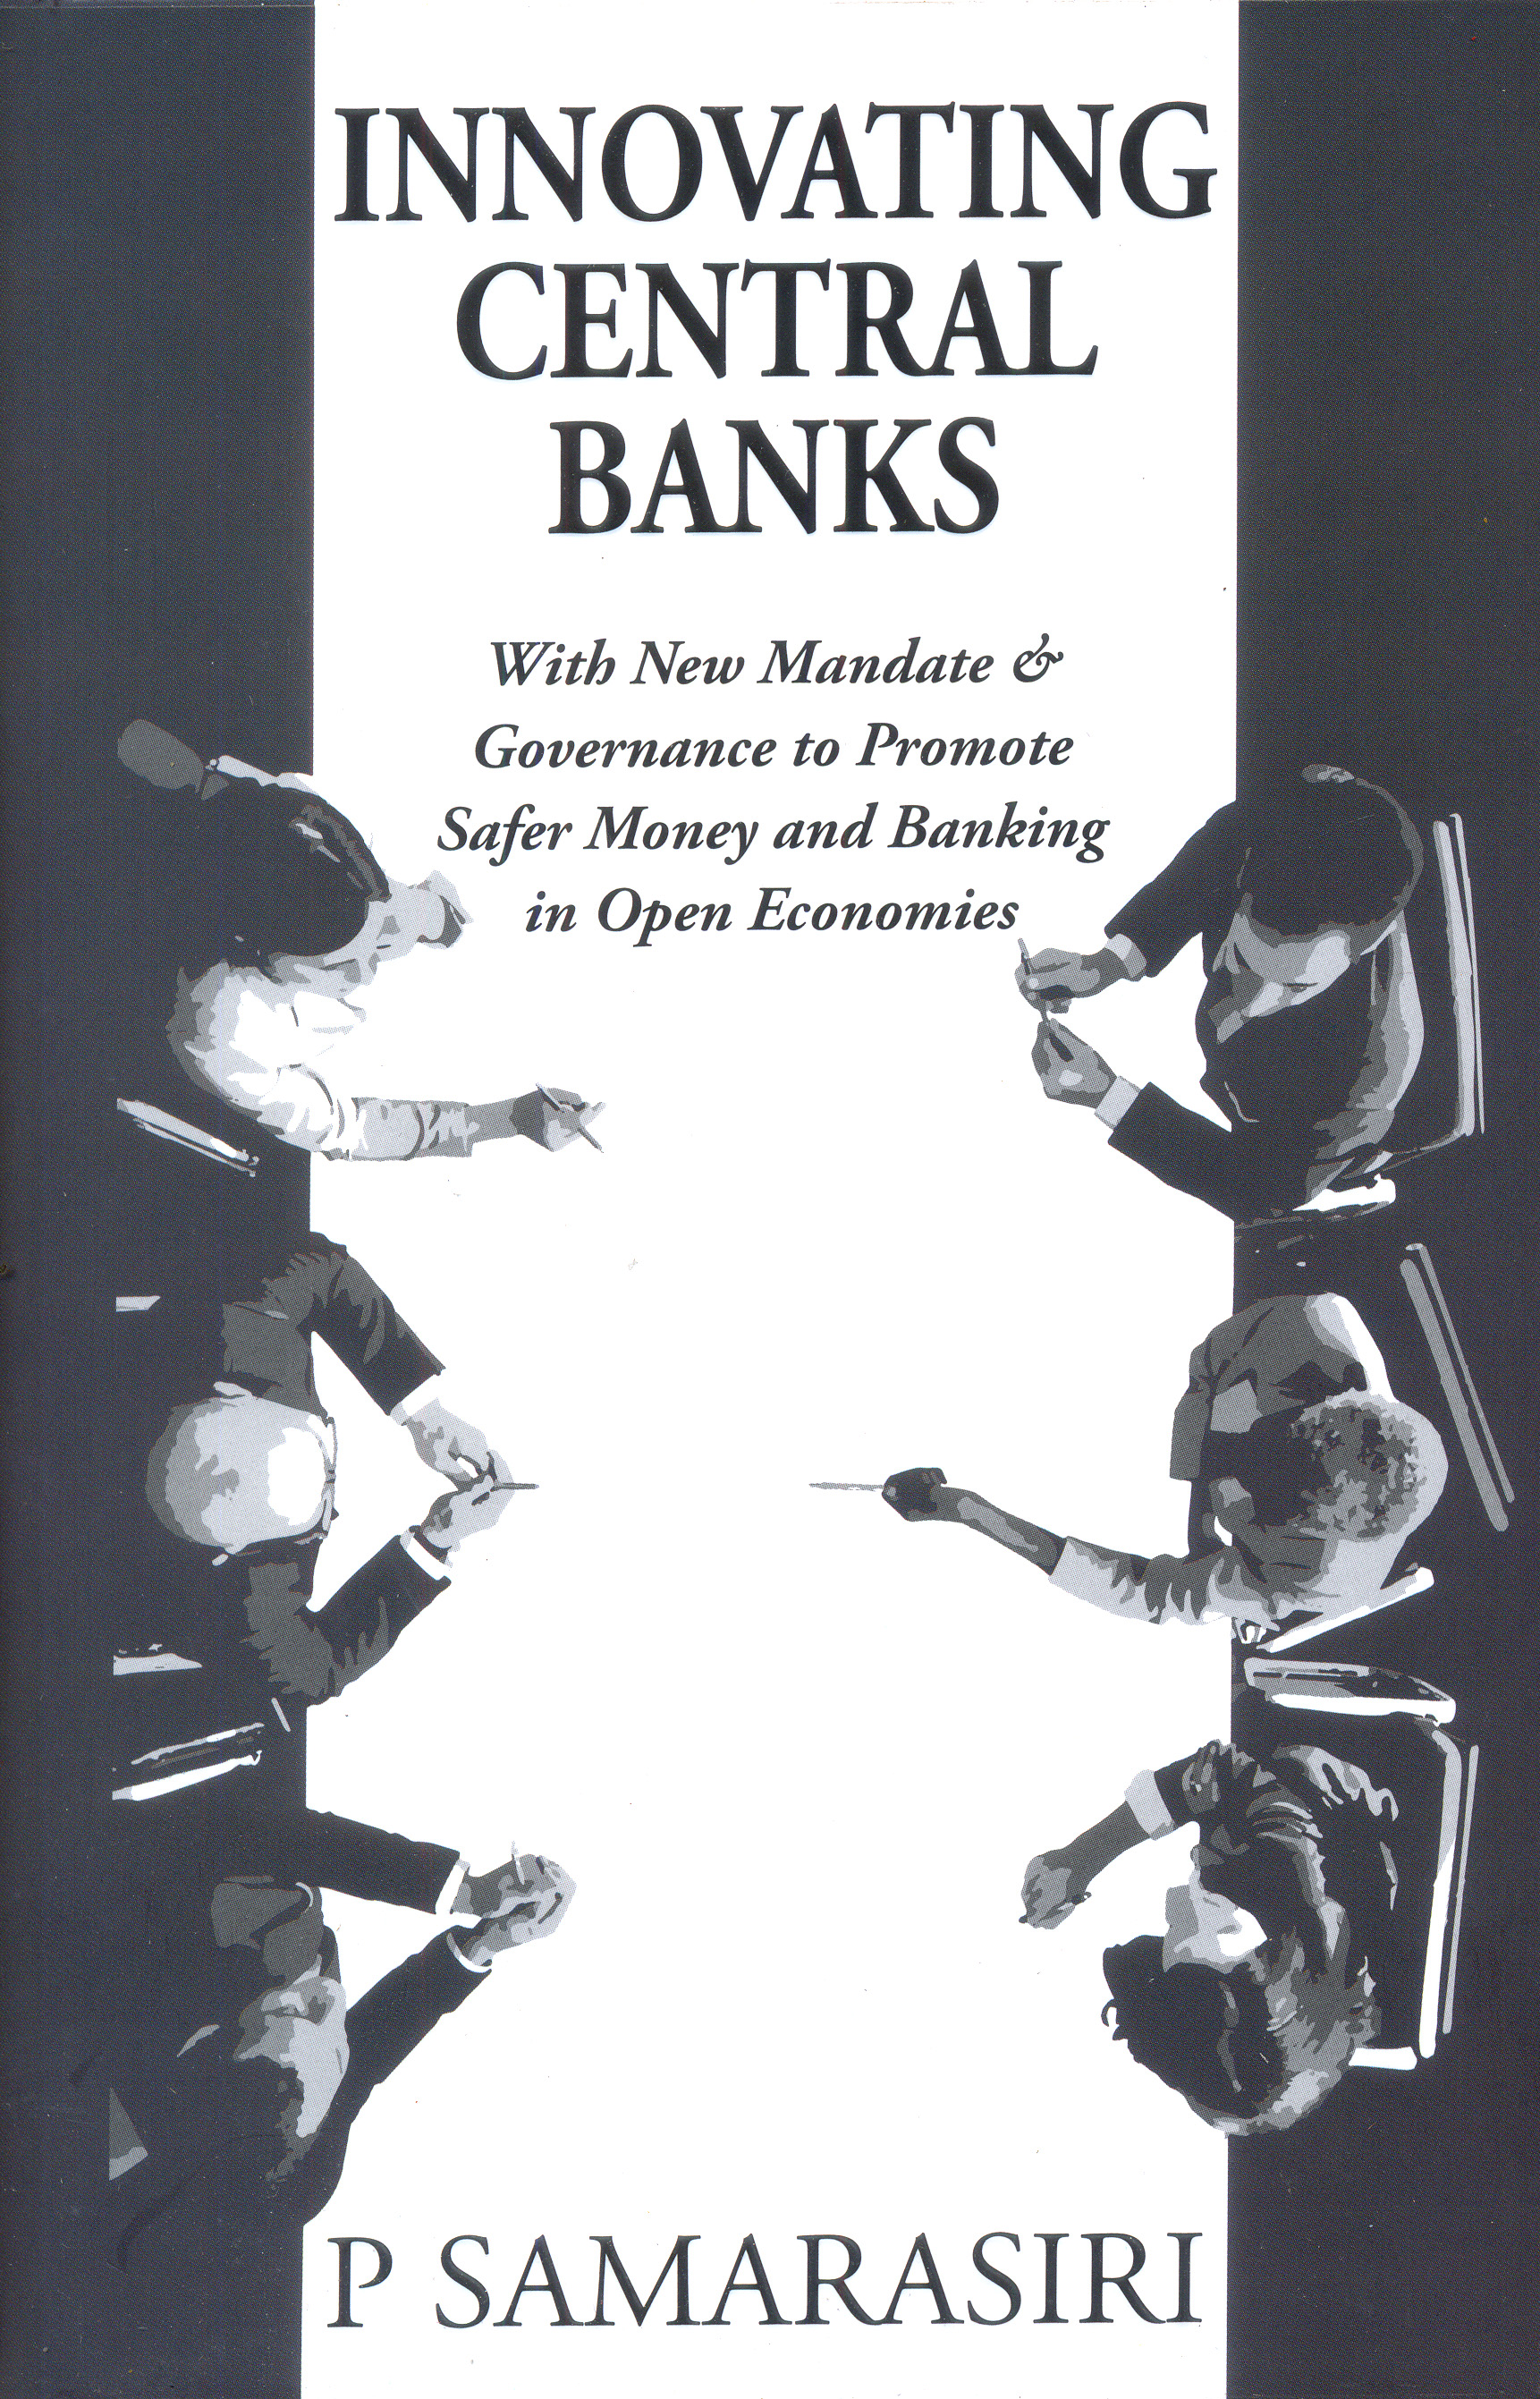 Innovating Central Banks - With New Mandate & Governance To Promate Safer Money And Banking In Open